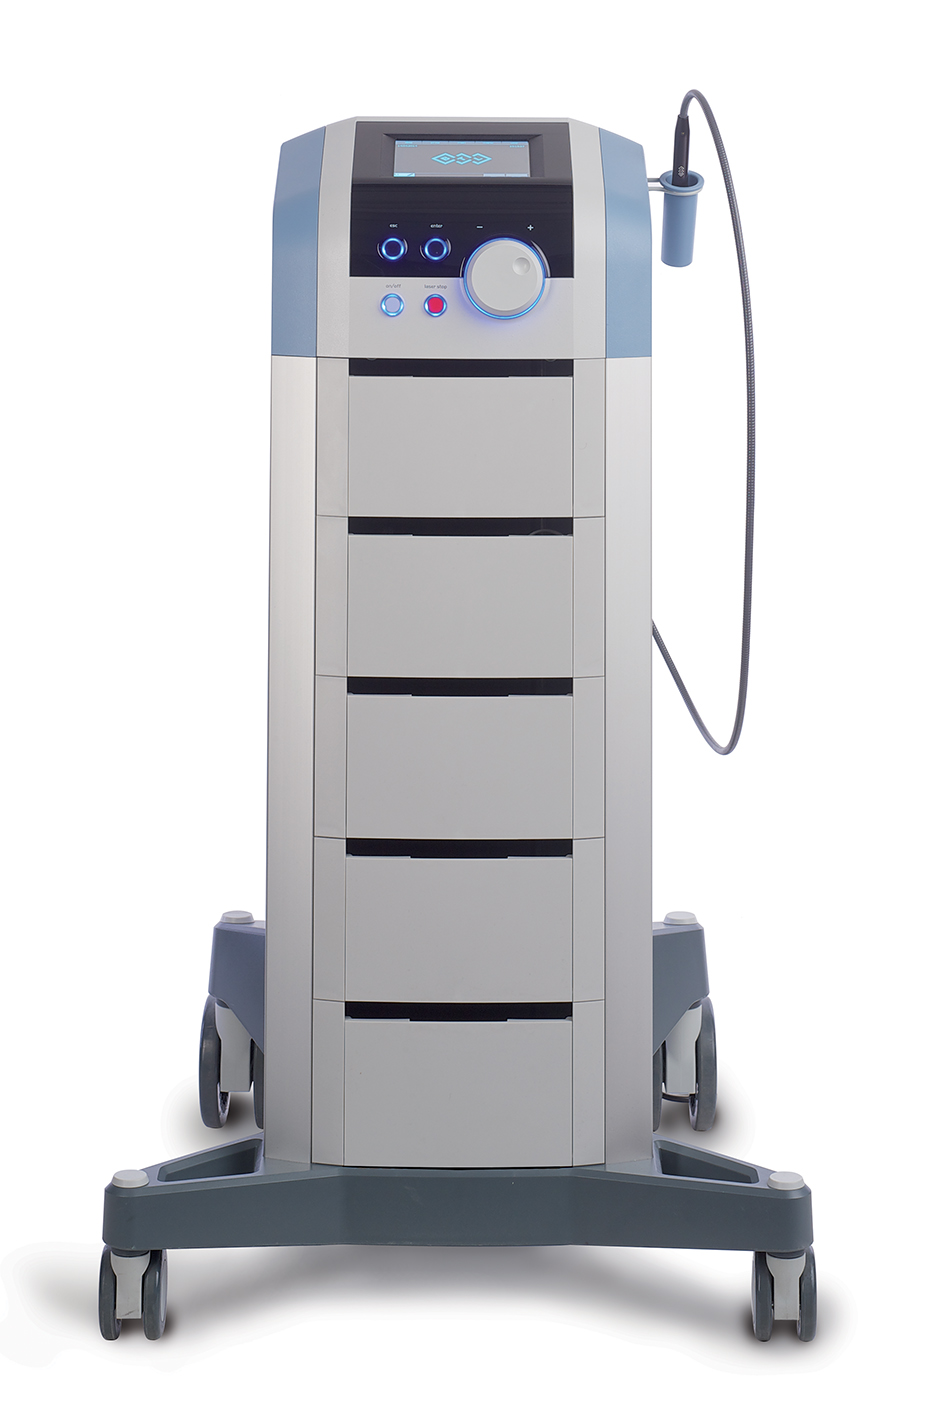 Laser công suất cao 12W